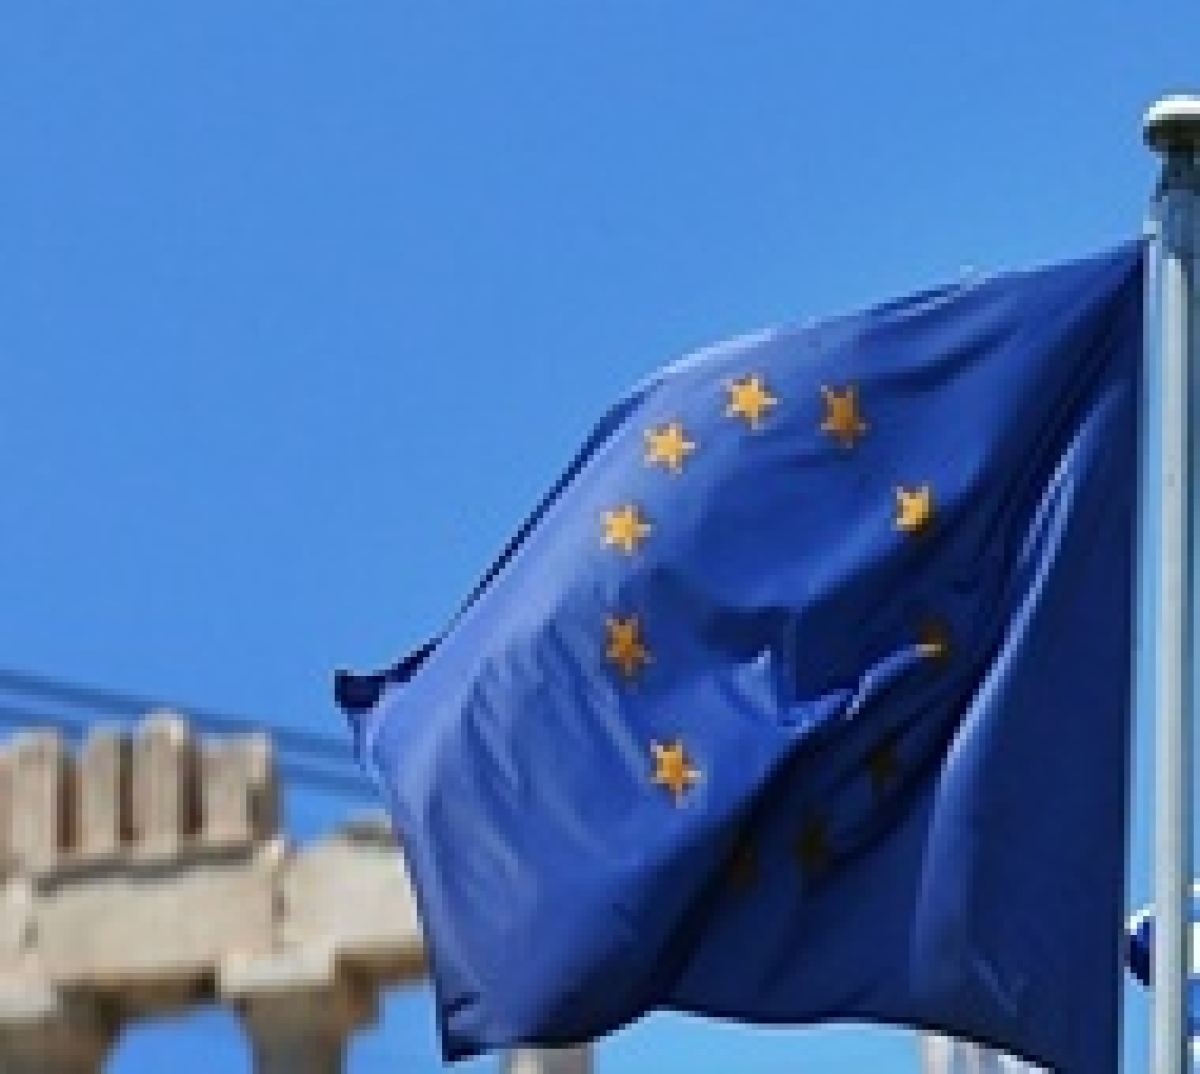 EU may impose economic sanctions on Pak over admission of support to terror groups